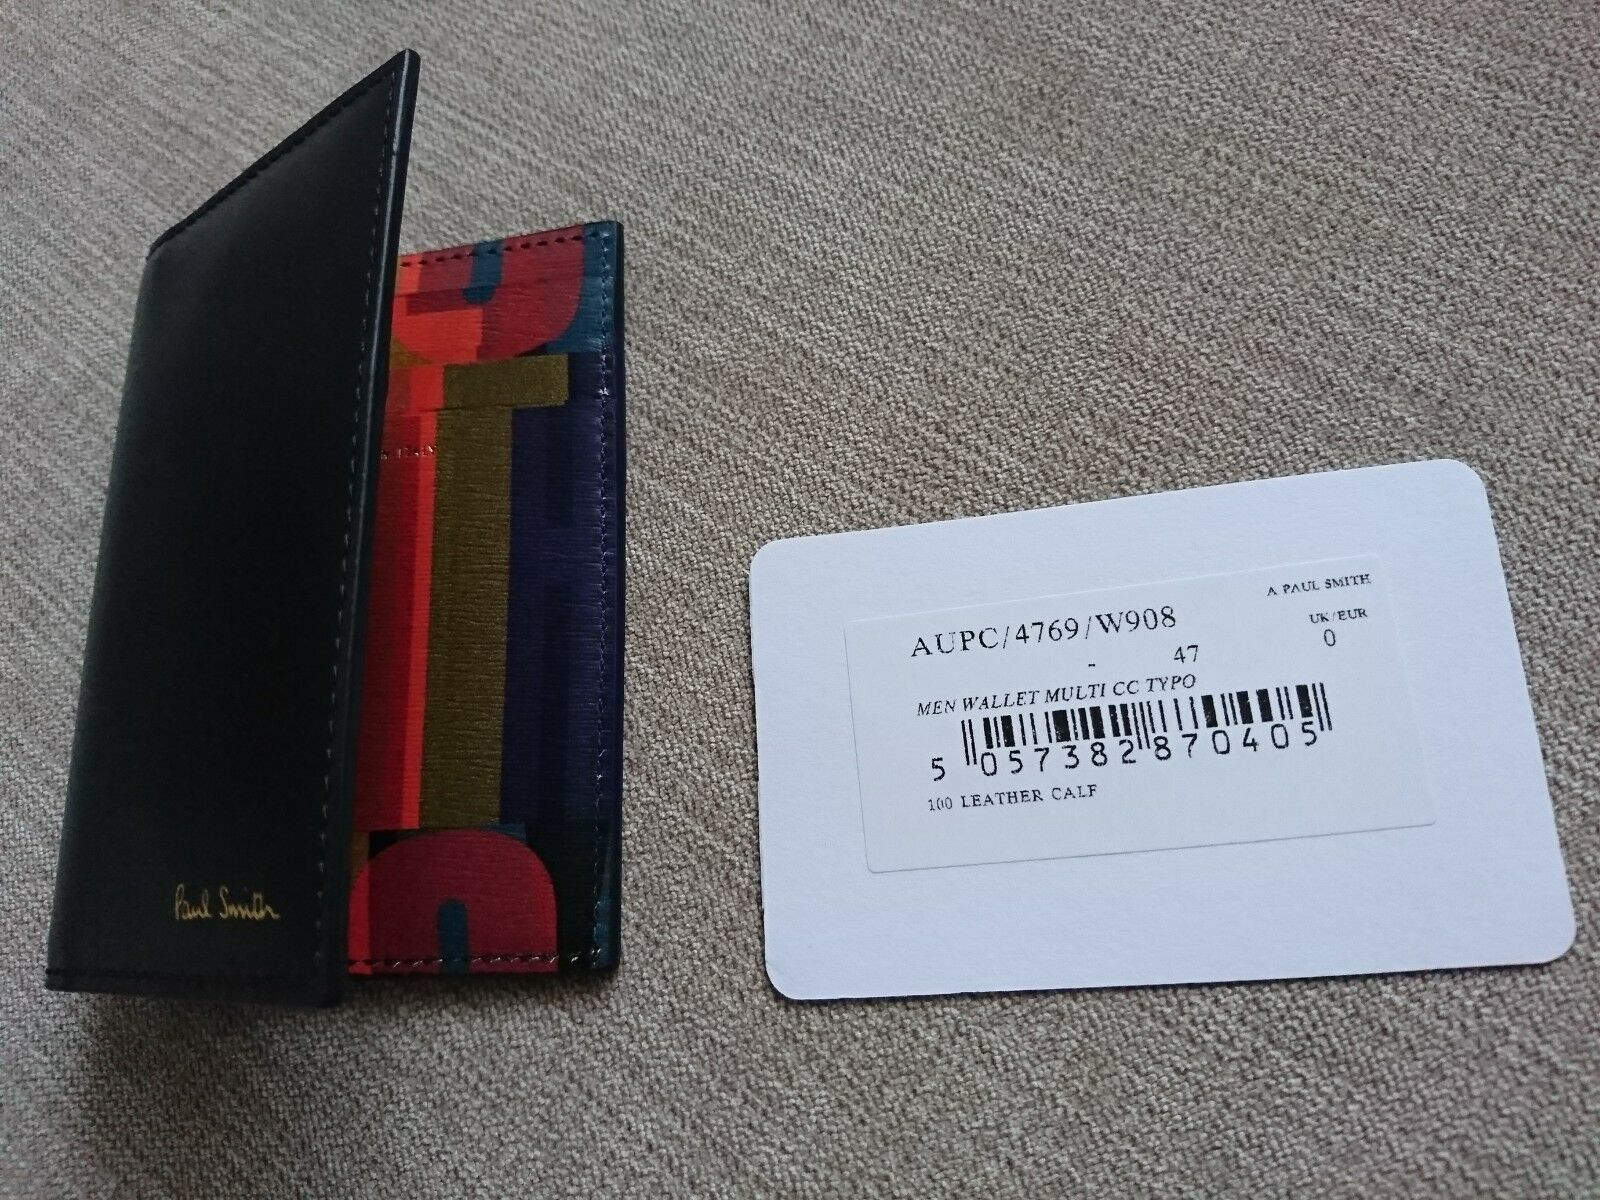 Paul Smith Wallet Wallet Wallet -BNWT Typography Leather Card Holder   | Offizielle  27a636